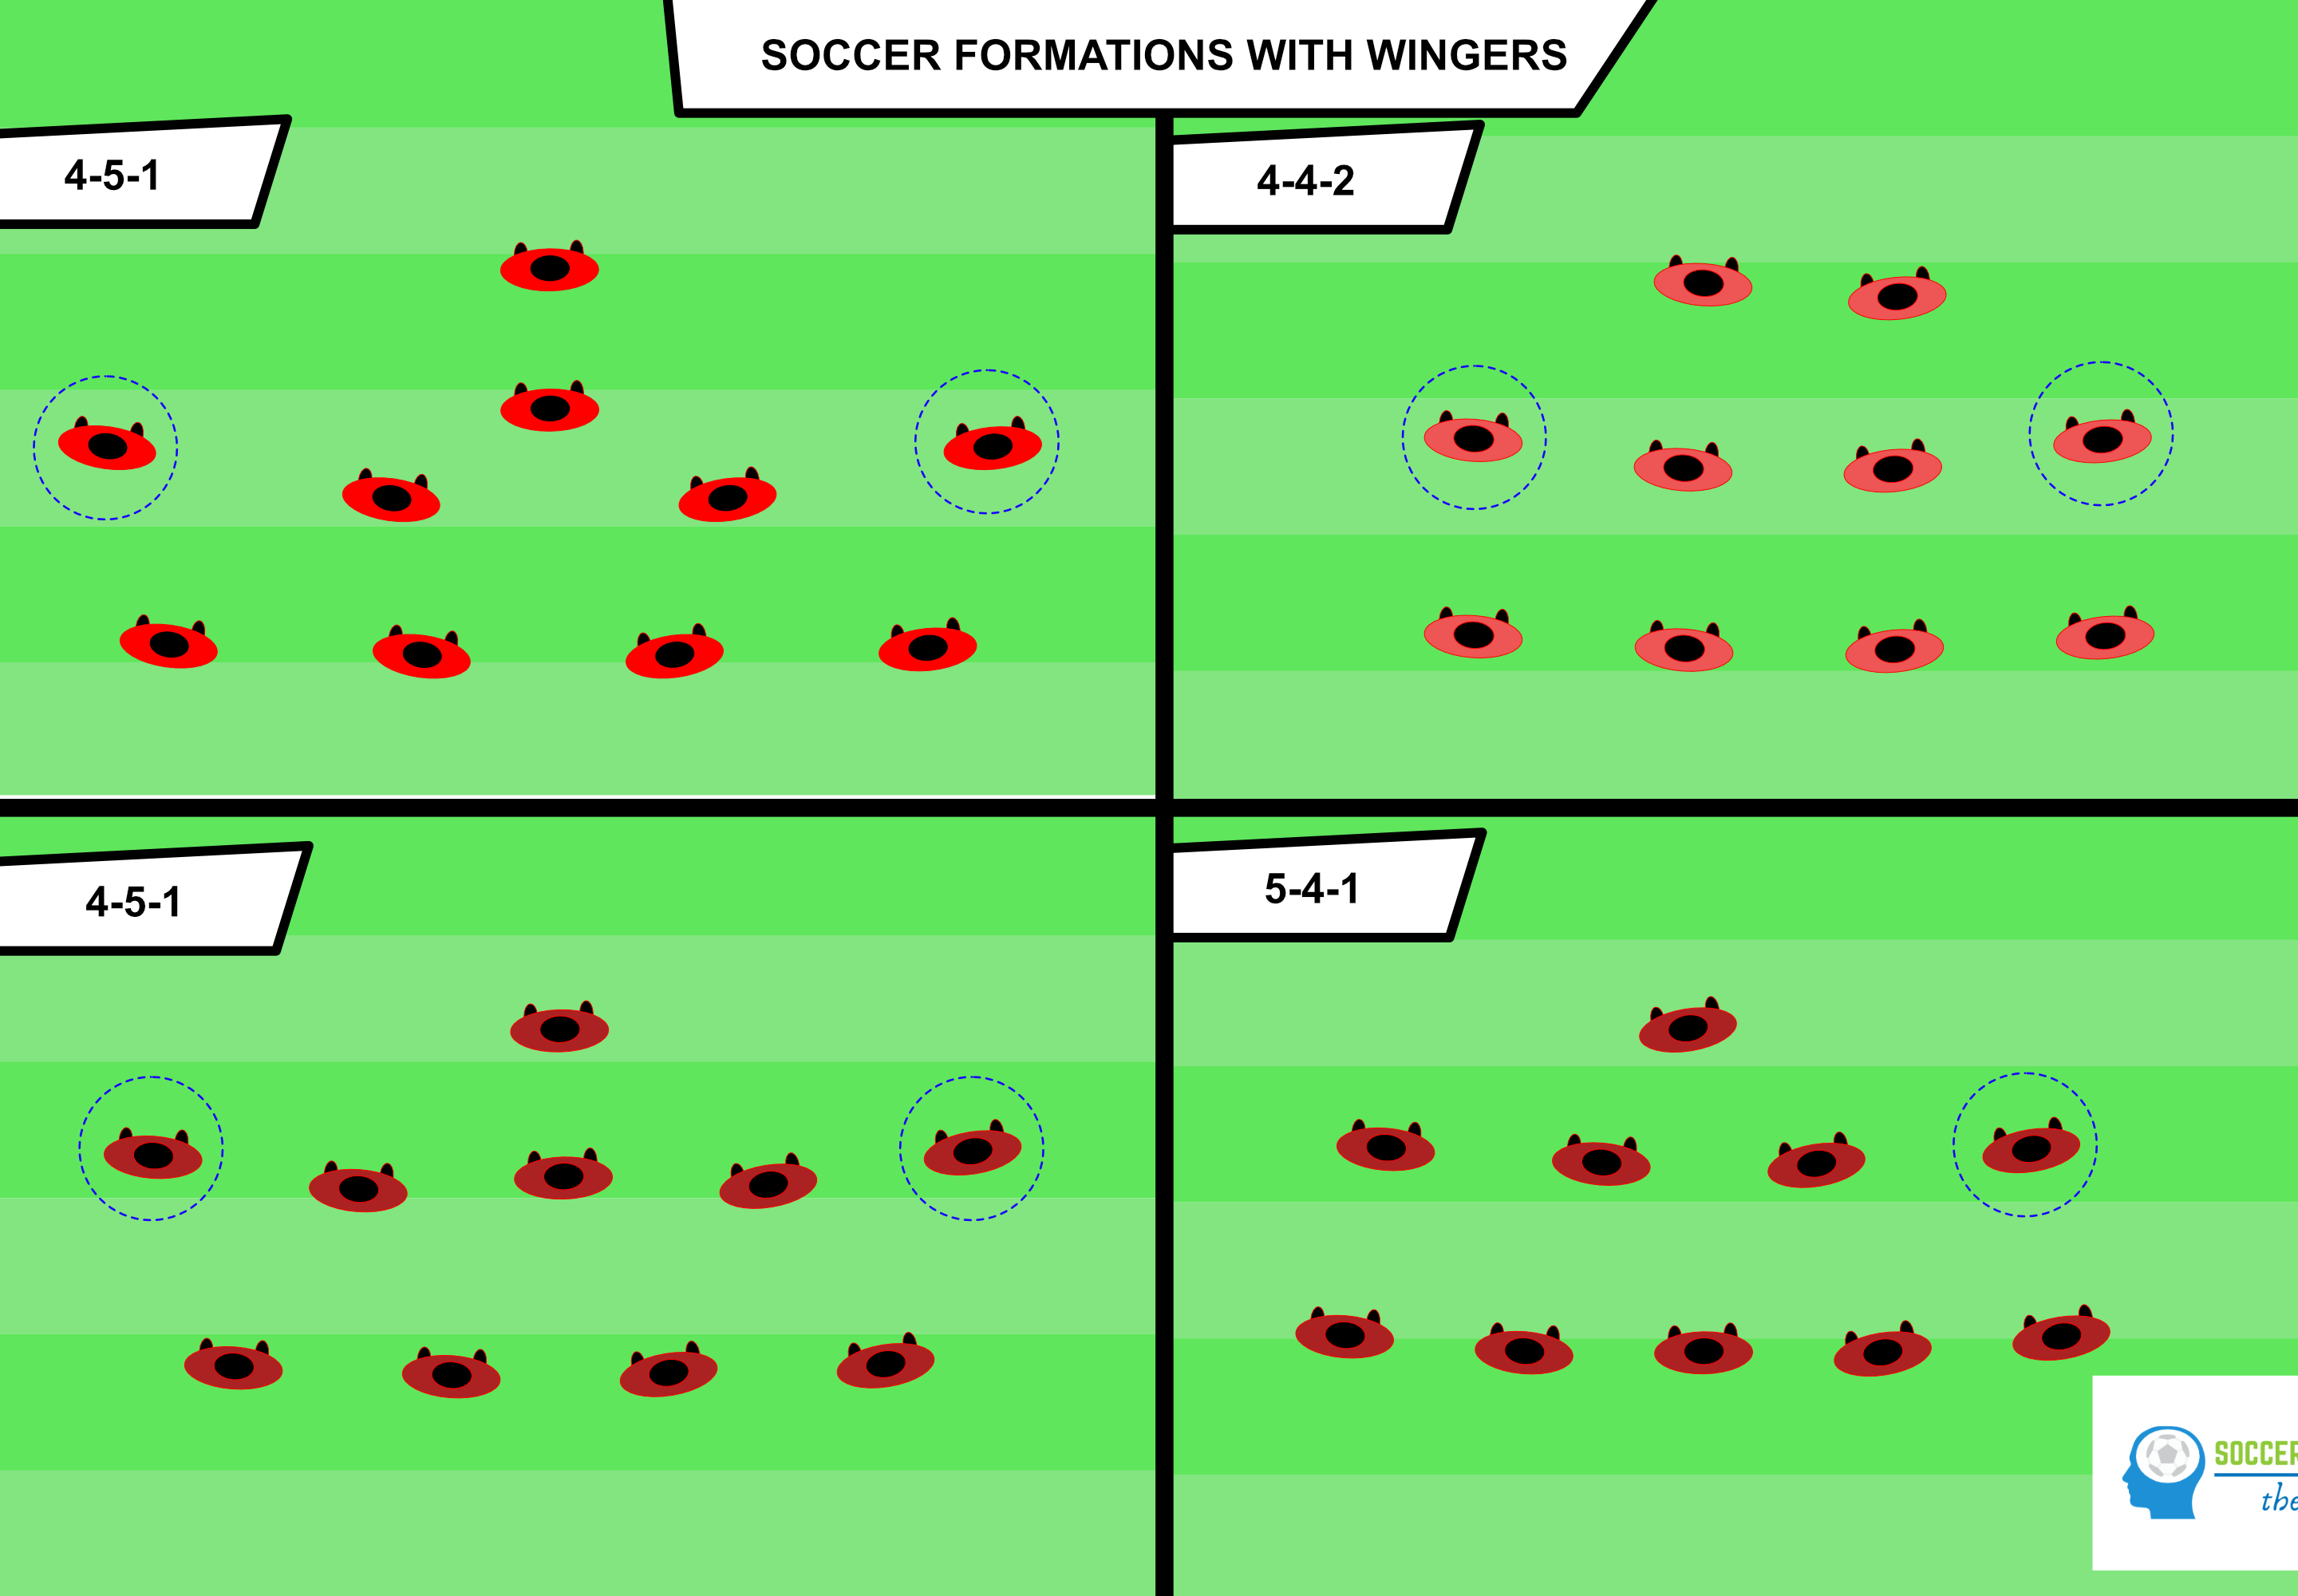 Soccer formations with wingers